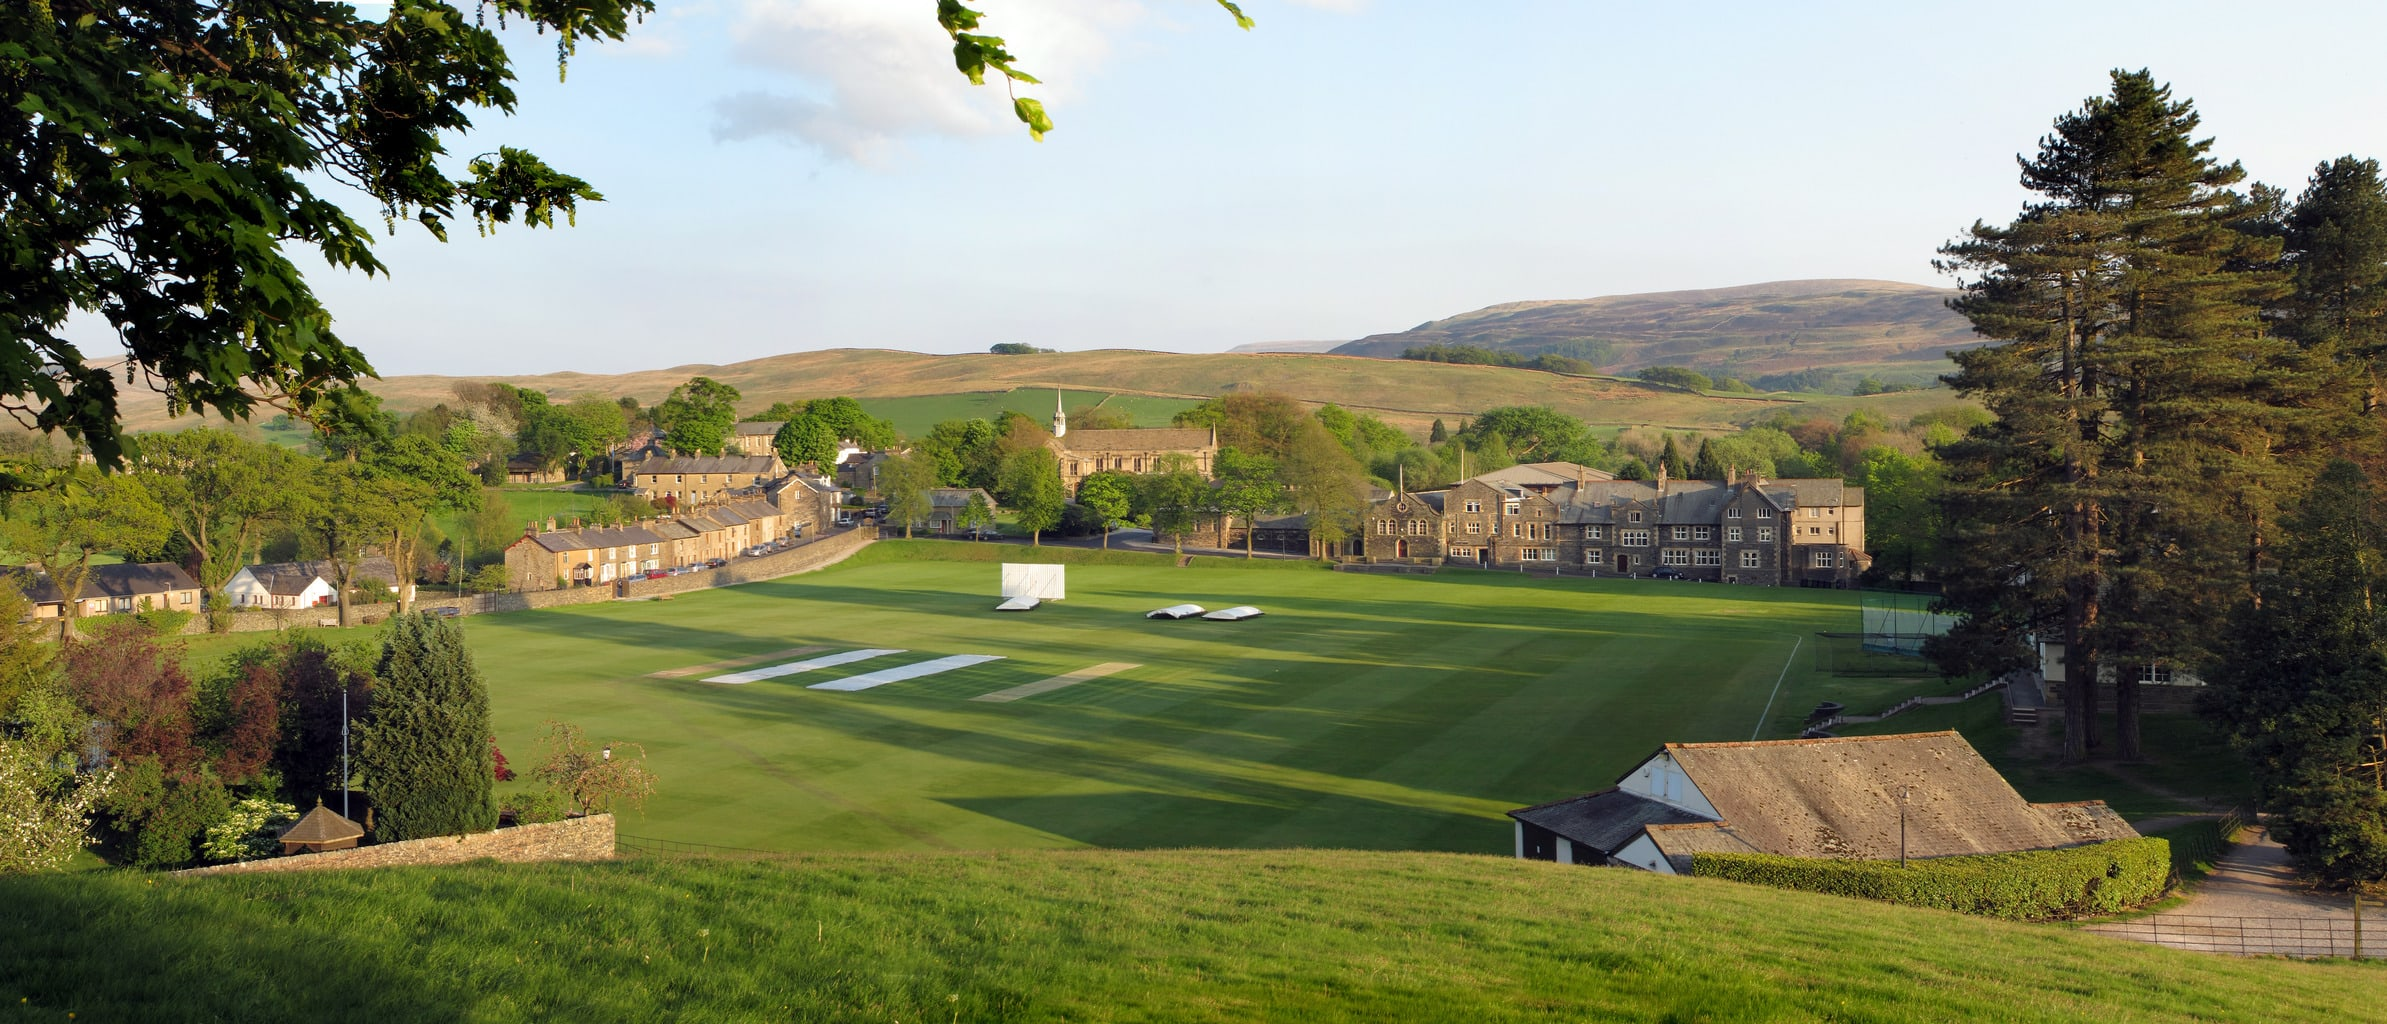 Sedbergh Senior School - Foundation - Cricket Pitch